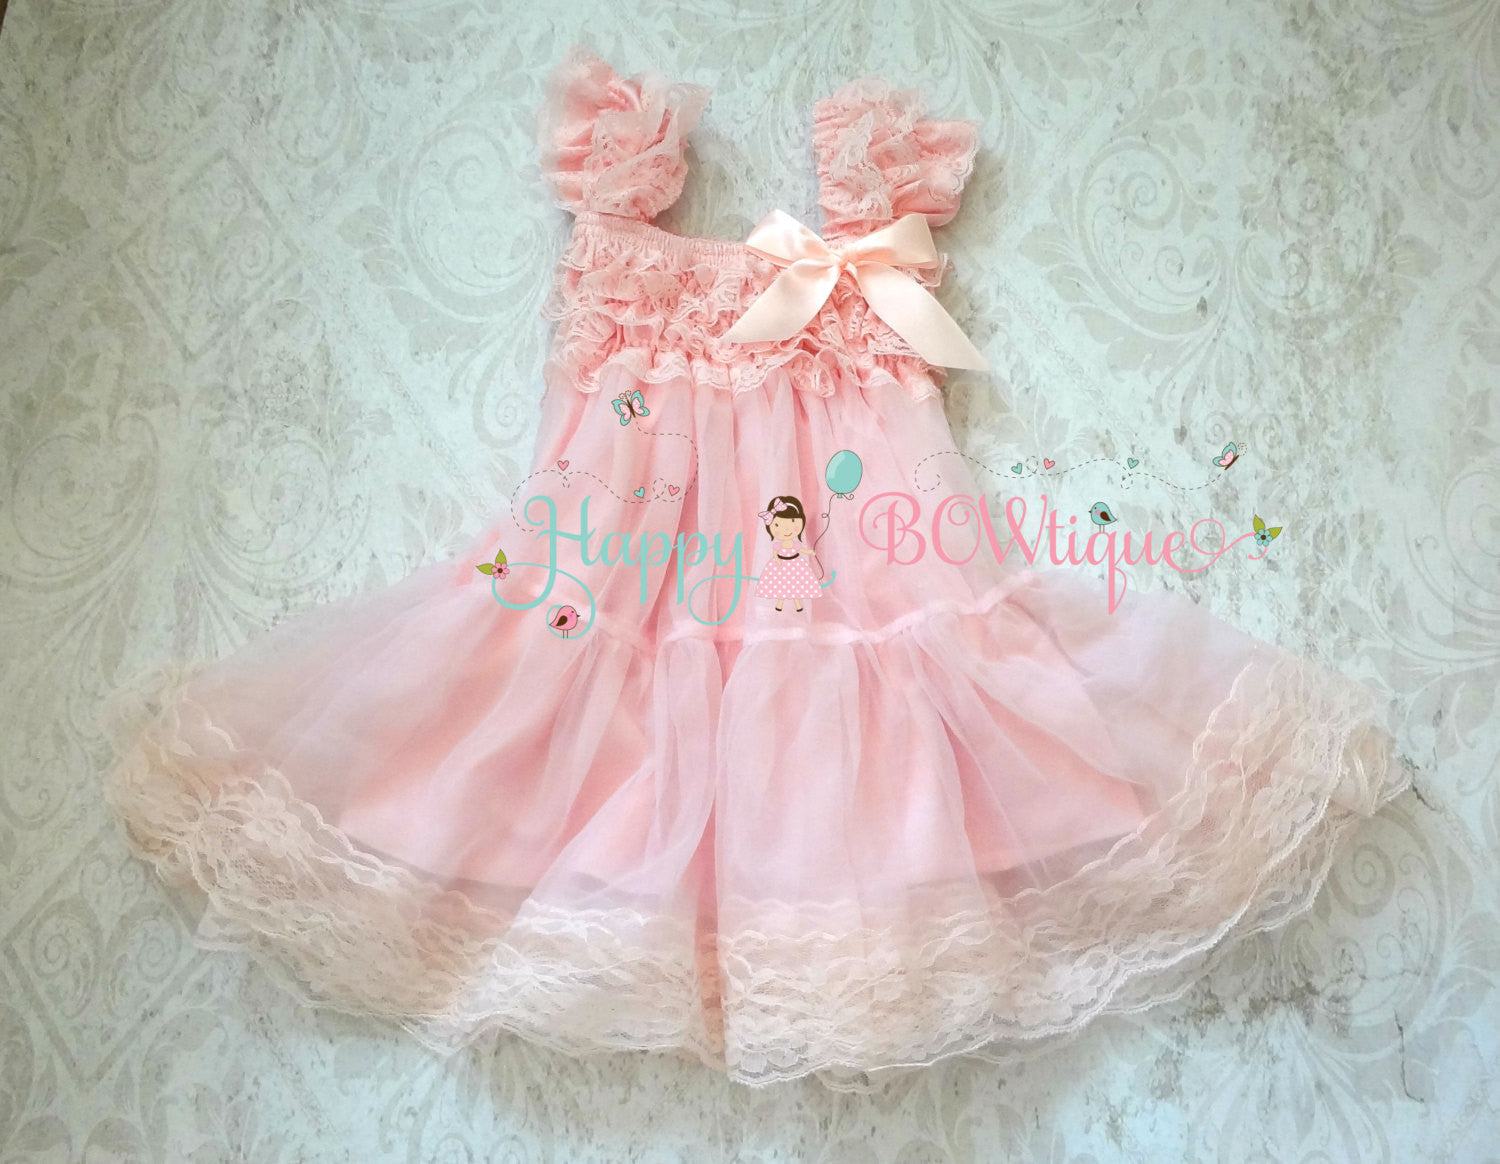 Valentine dress, Sweetheart  Pink Heart Chiffon Lace Dress - Happy BOWtique - children's clothing, Baby Girl clothing